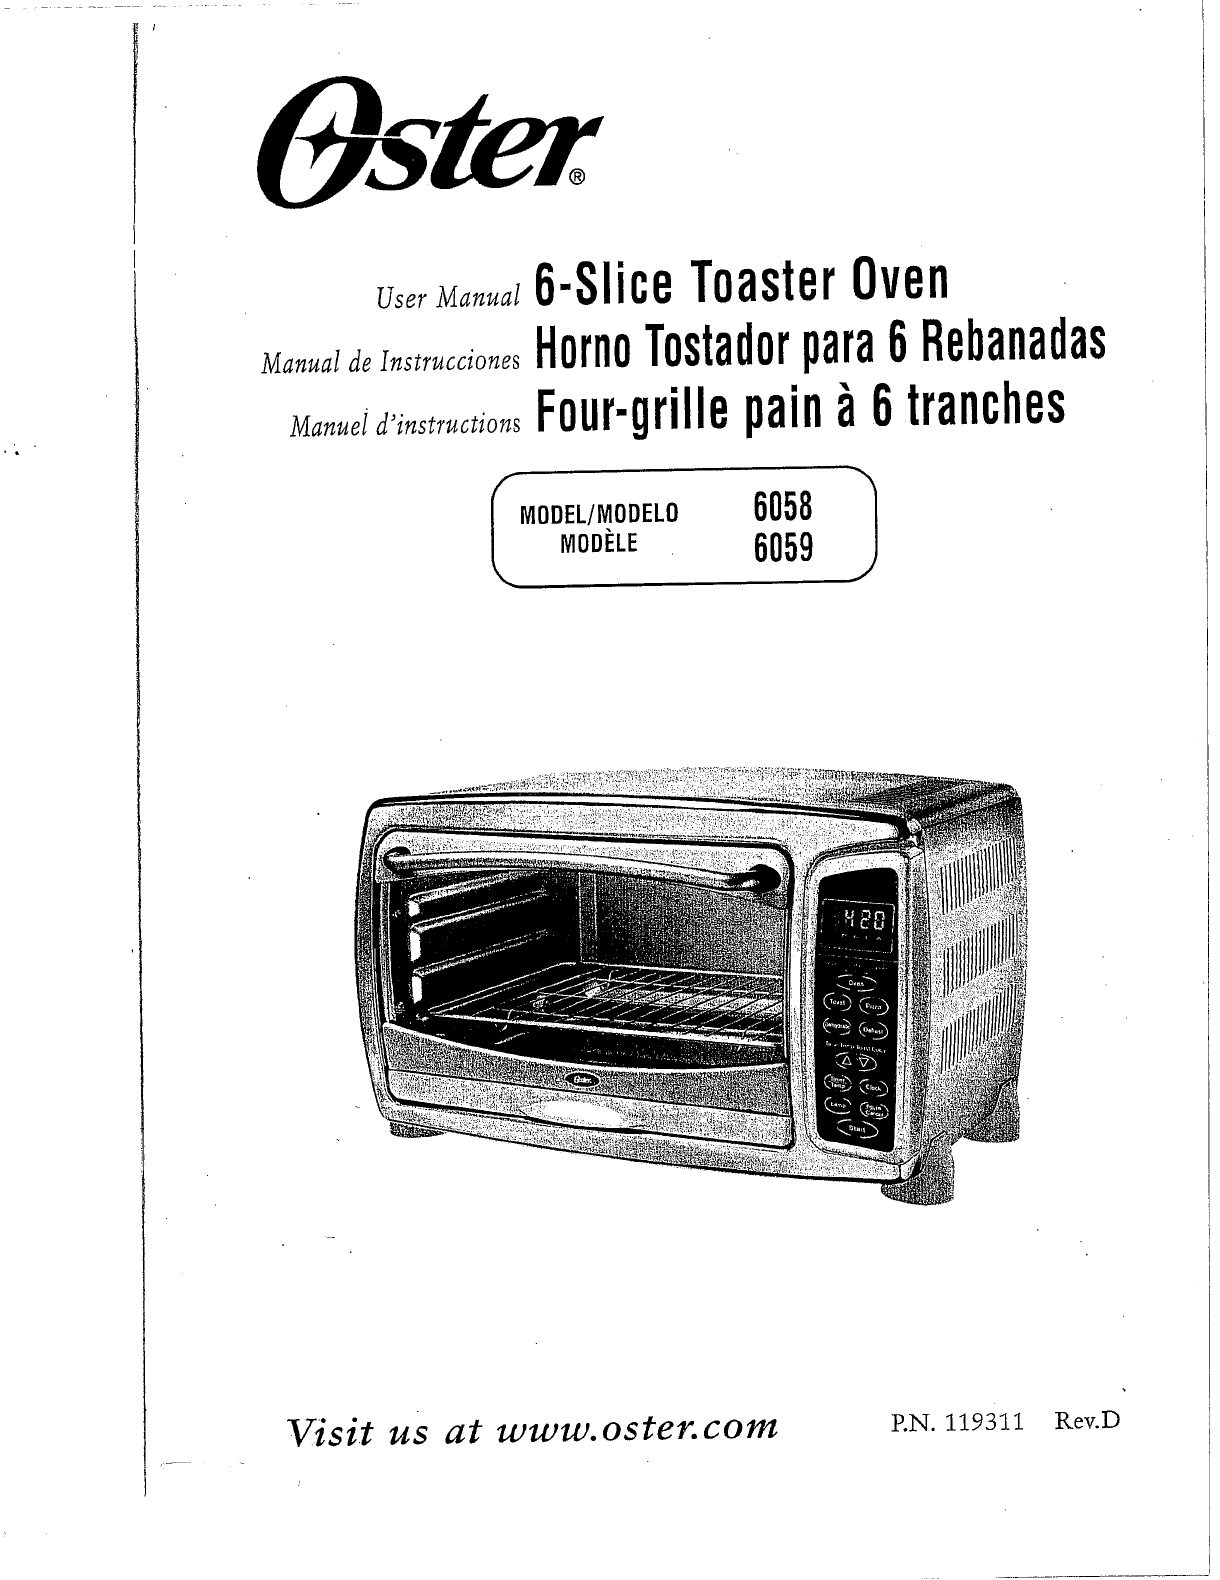 oster toaster 6058 user guide manualsonline com rh kitchen manualsonline com Oster Digital Convection Toaster Oven Oster 6058 Parts